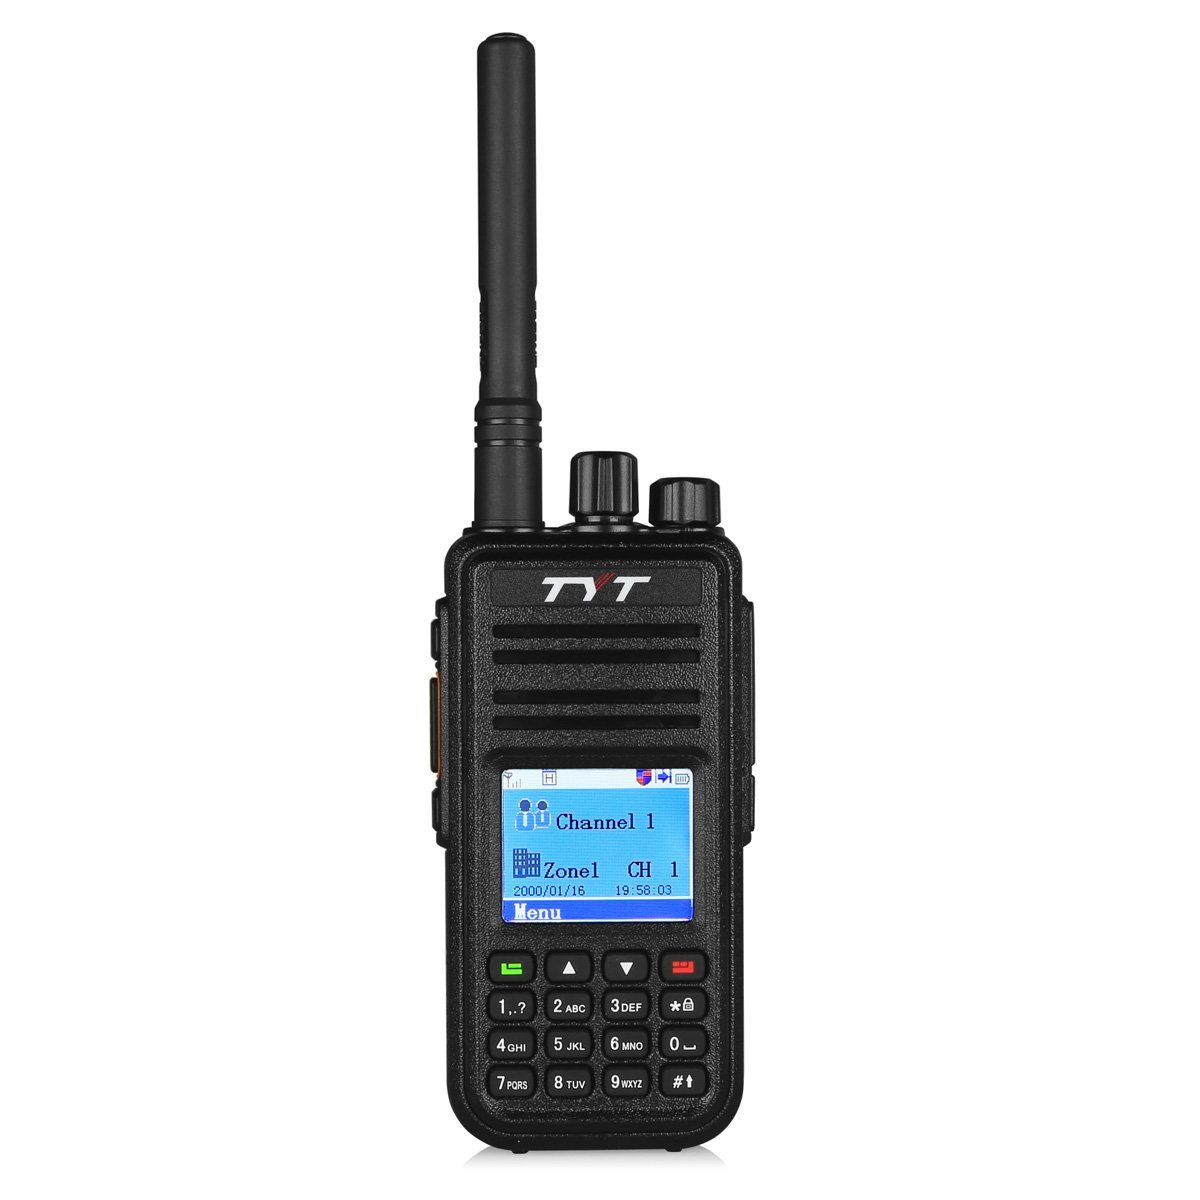 TYT Tytera MD-380 DMR Digital Radio, 400-480UHF, Up to 1000 Channels, with Color LCD Display, Programming Cable and 2 Antenna (High Gain Antenna in cluded), Black